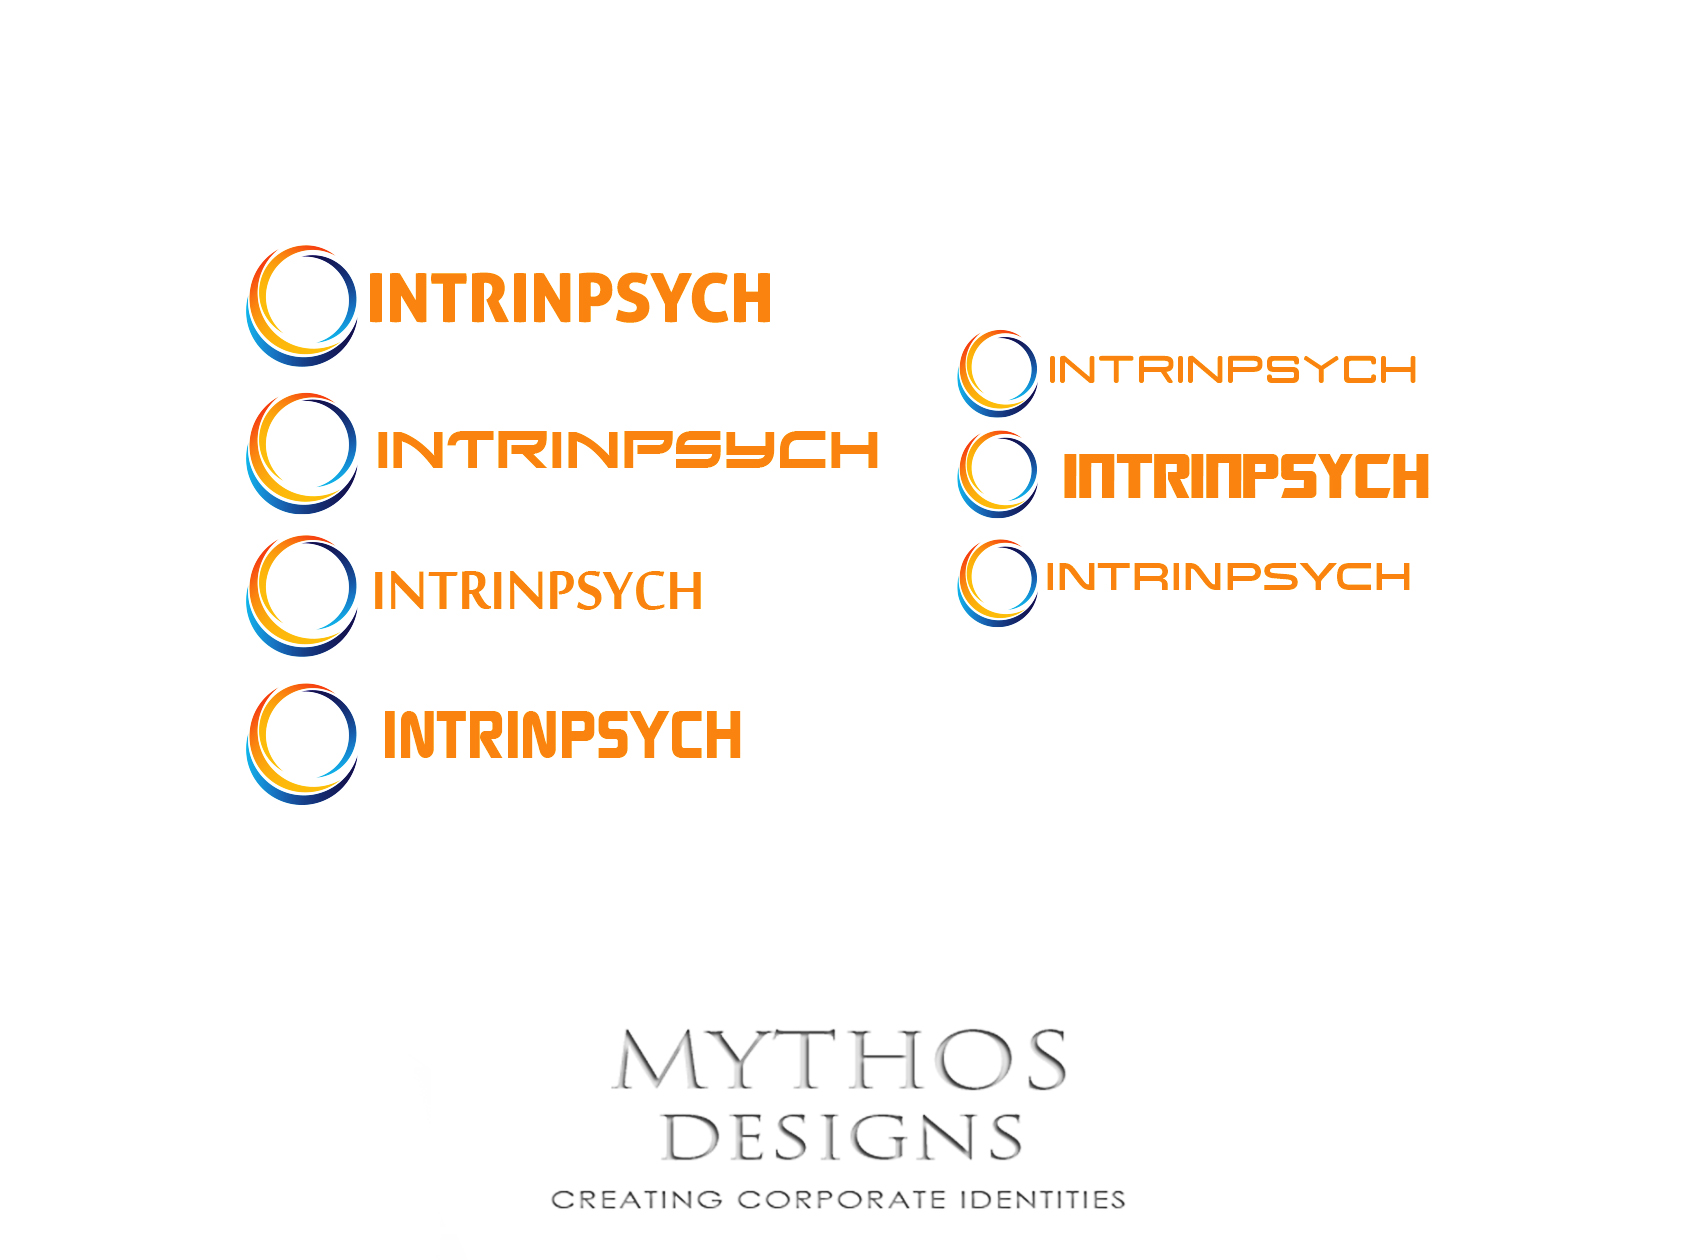 Logo Design by Mythos Designs - Entry No. 106 in the Logo Design Contest New Logo Design for IntrinPsych.